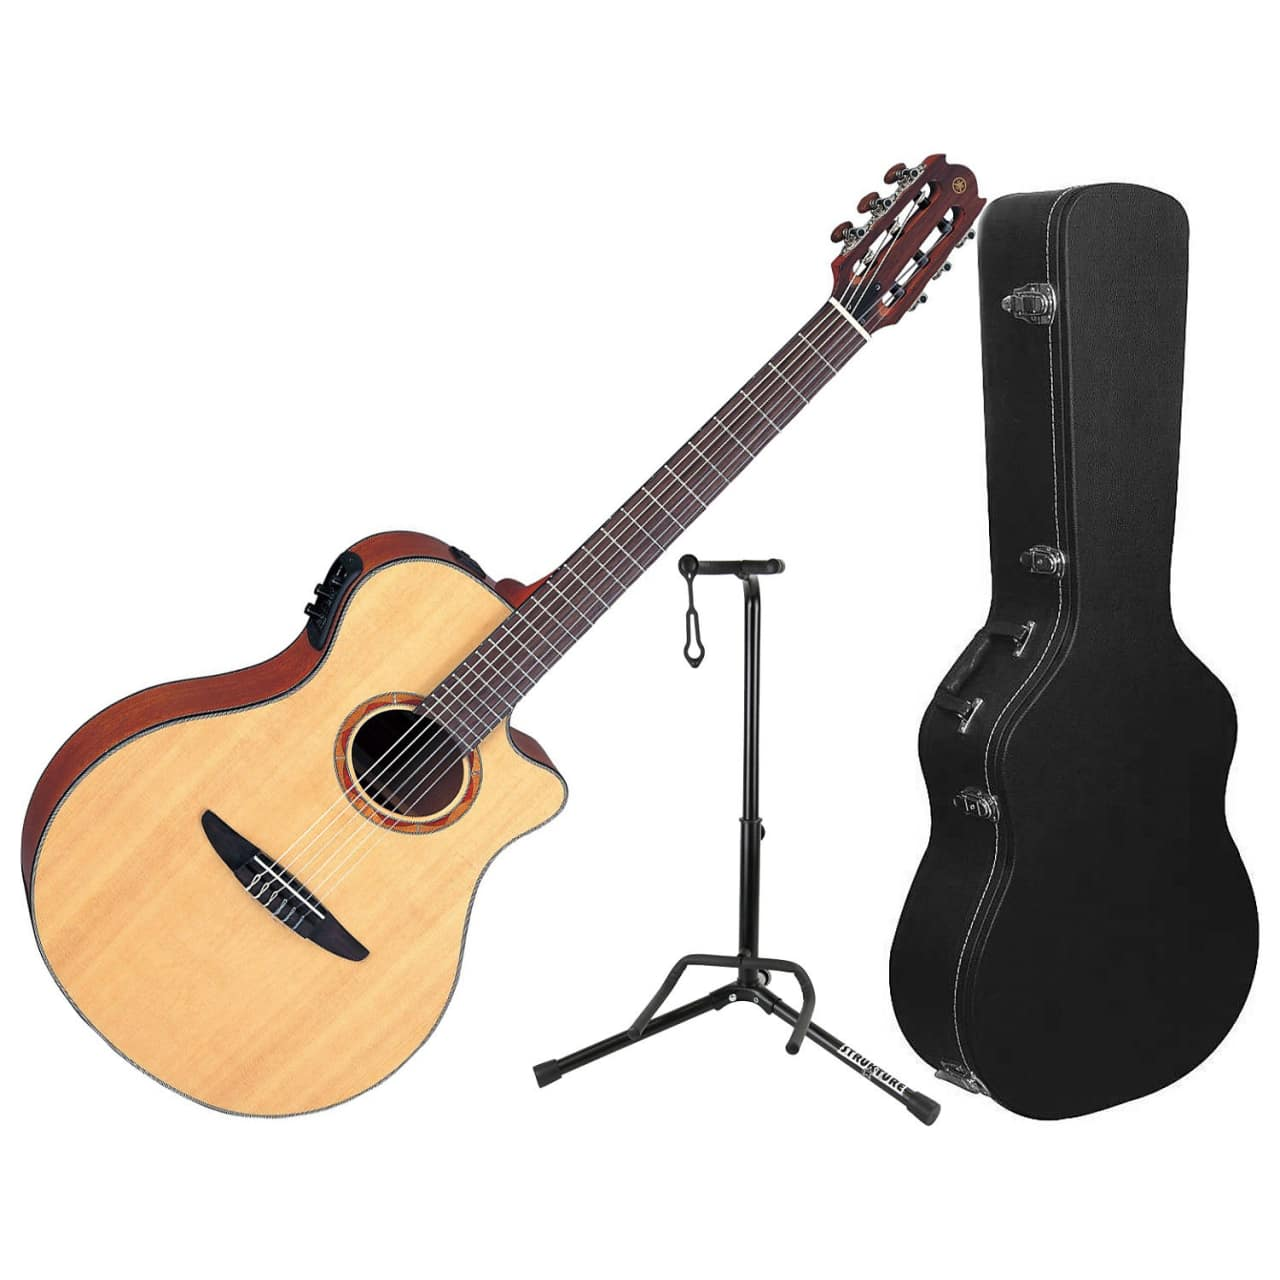 Yamaha ntx700 ntx acoustic electric classical guitar for Yamaha classic guitar